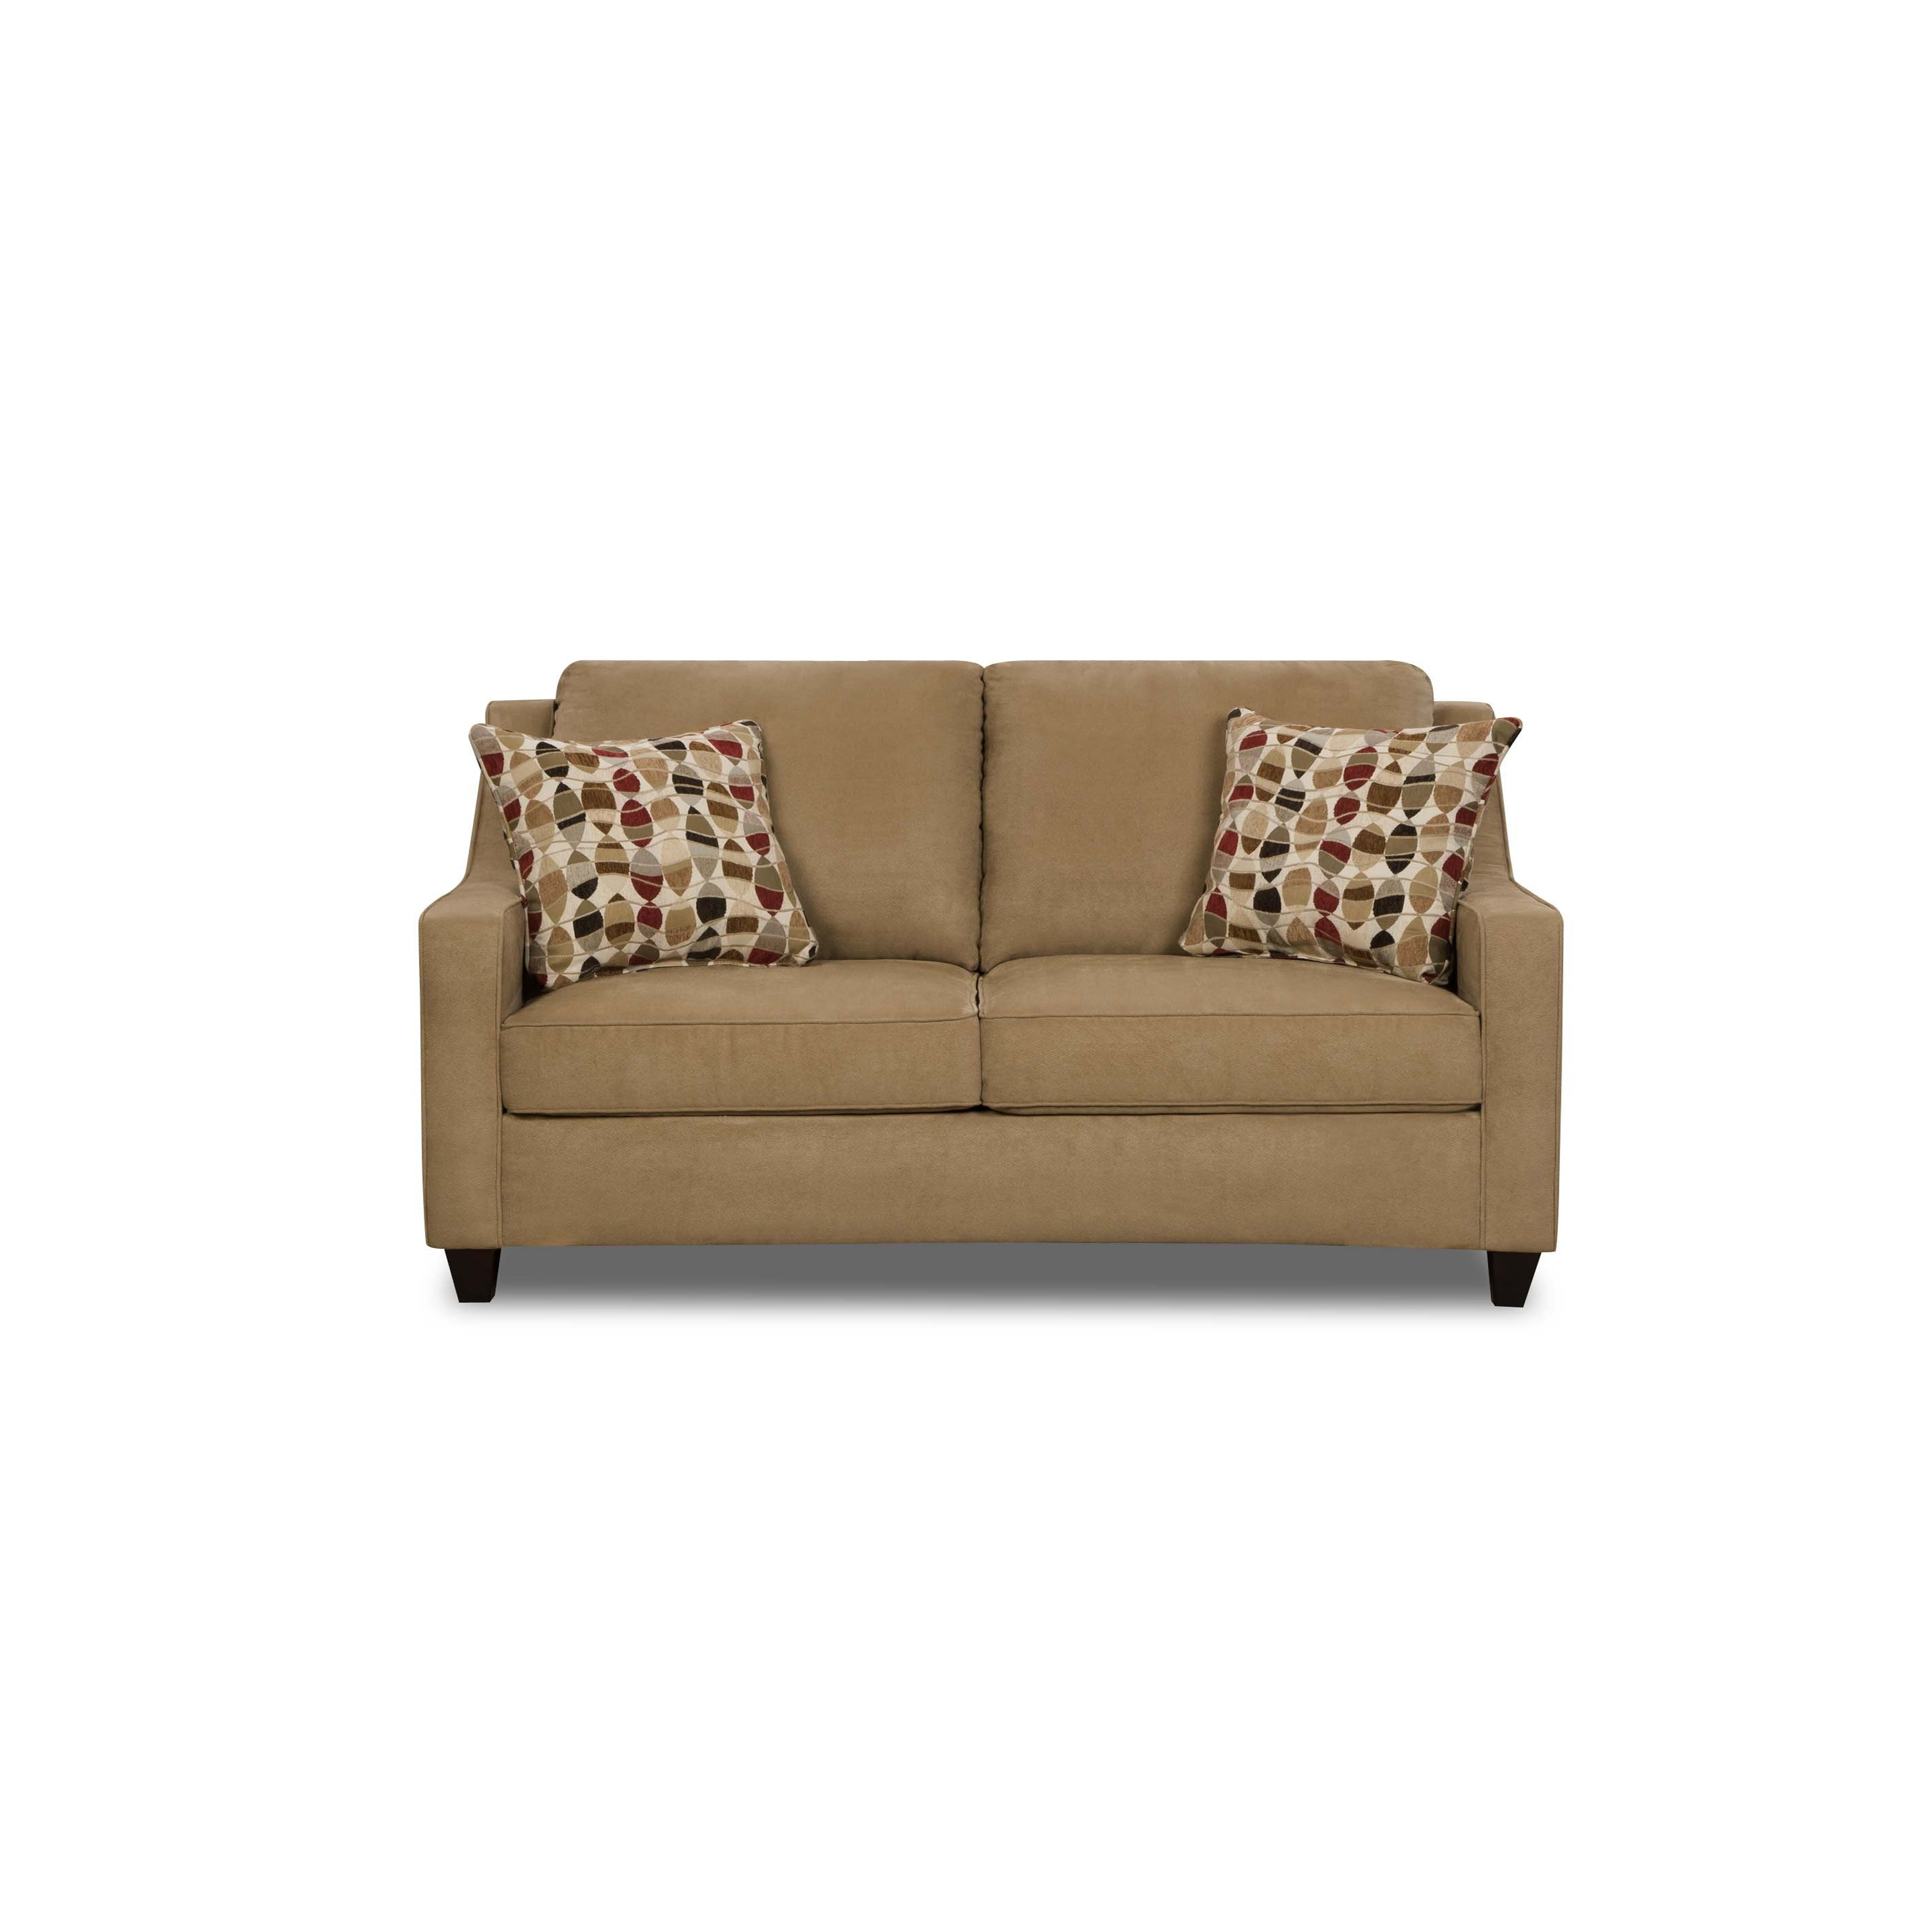 Sectional Sofa Bed | Sleeper Loveseat | Loveseat Sleeper